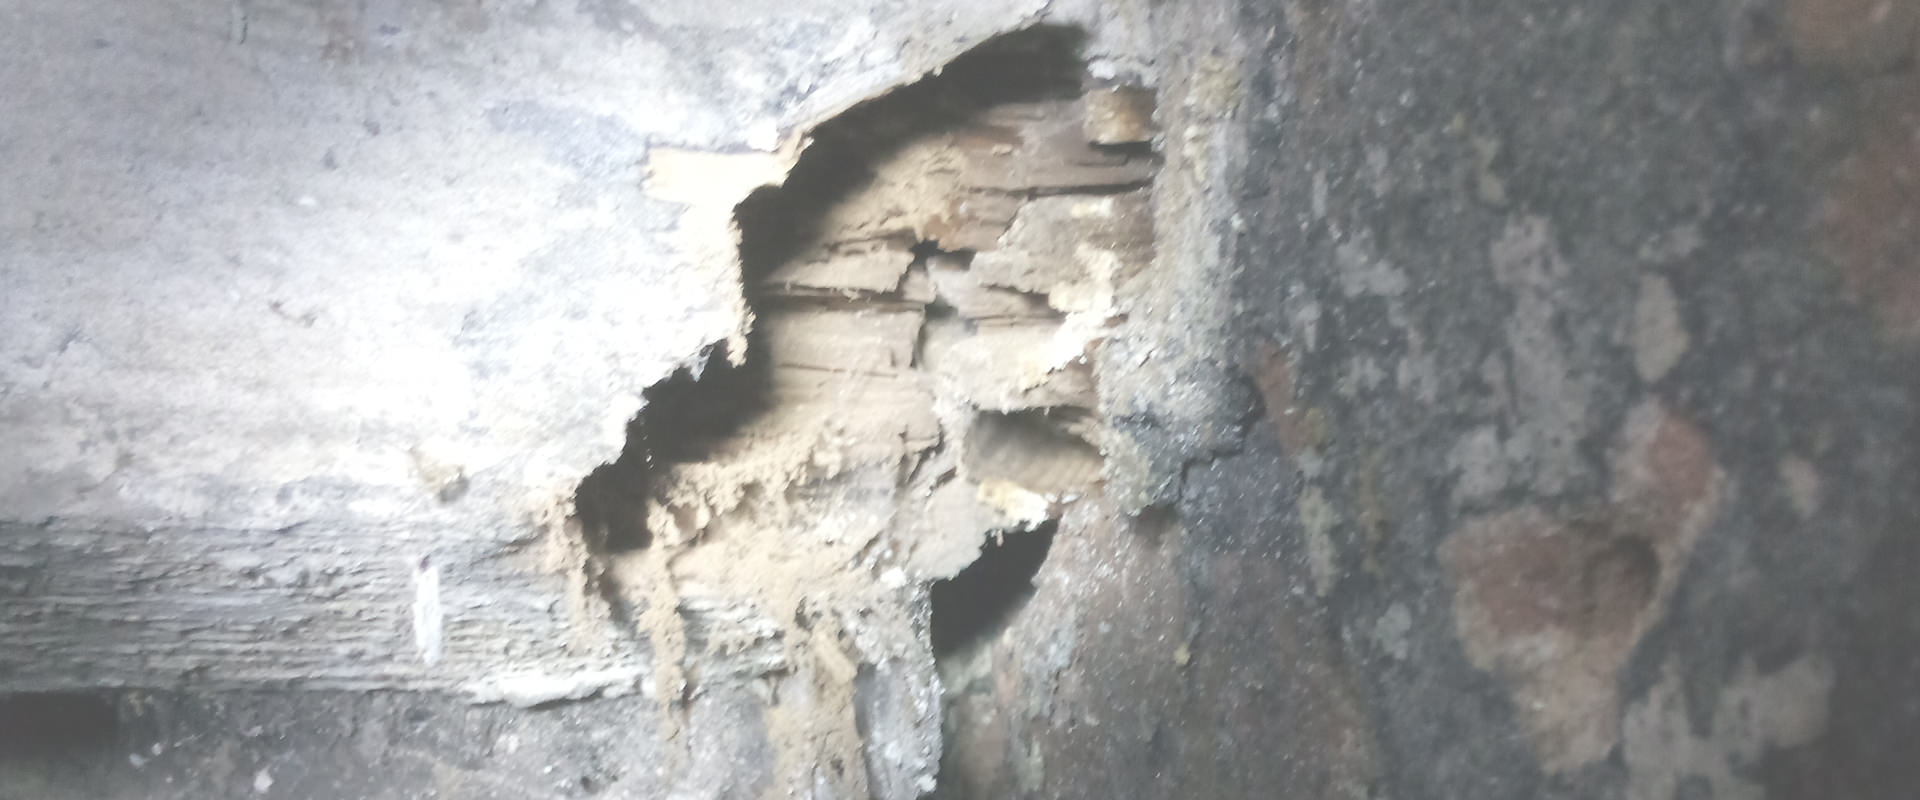 Wet & Dry Rot Liverpool